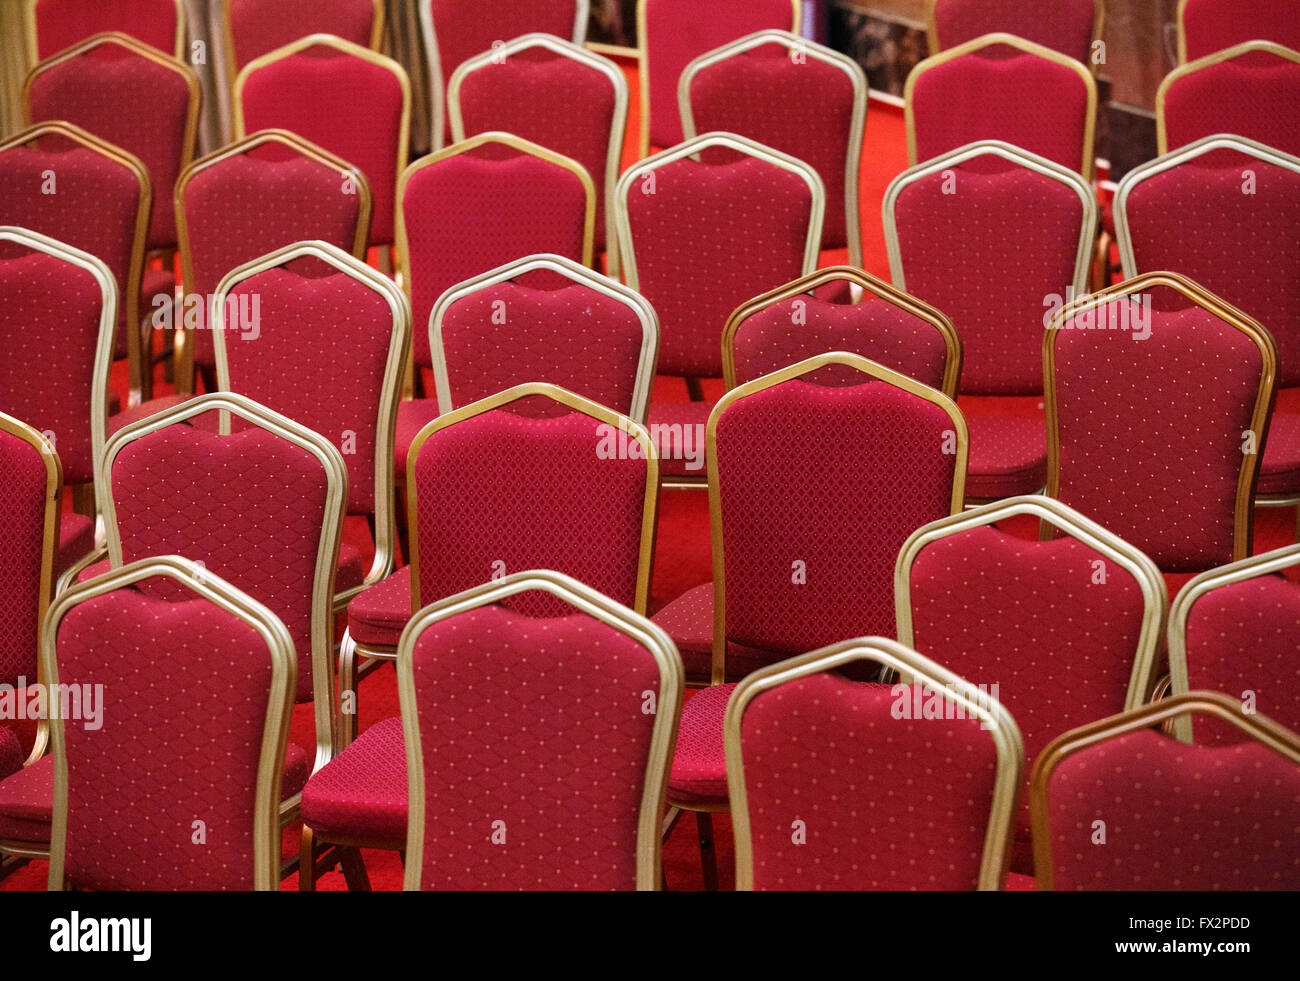 Rows of empty red seats in theater or cinema hall Stock Photo